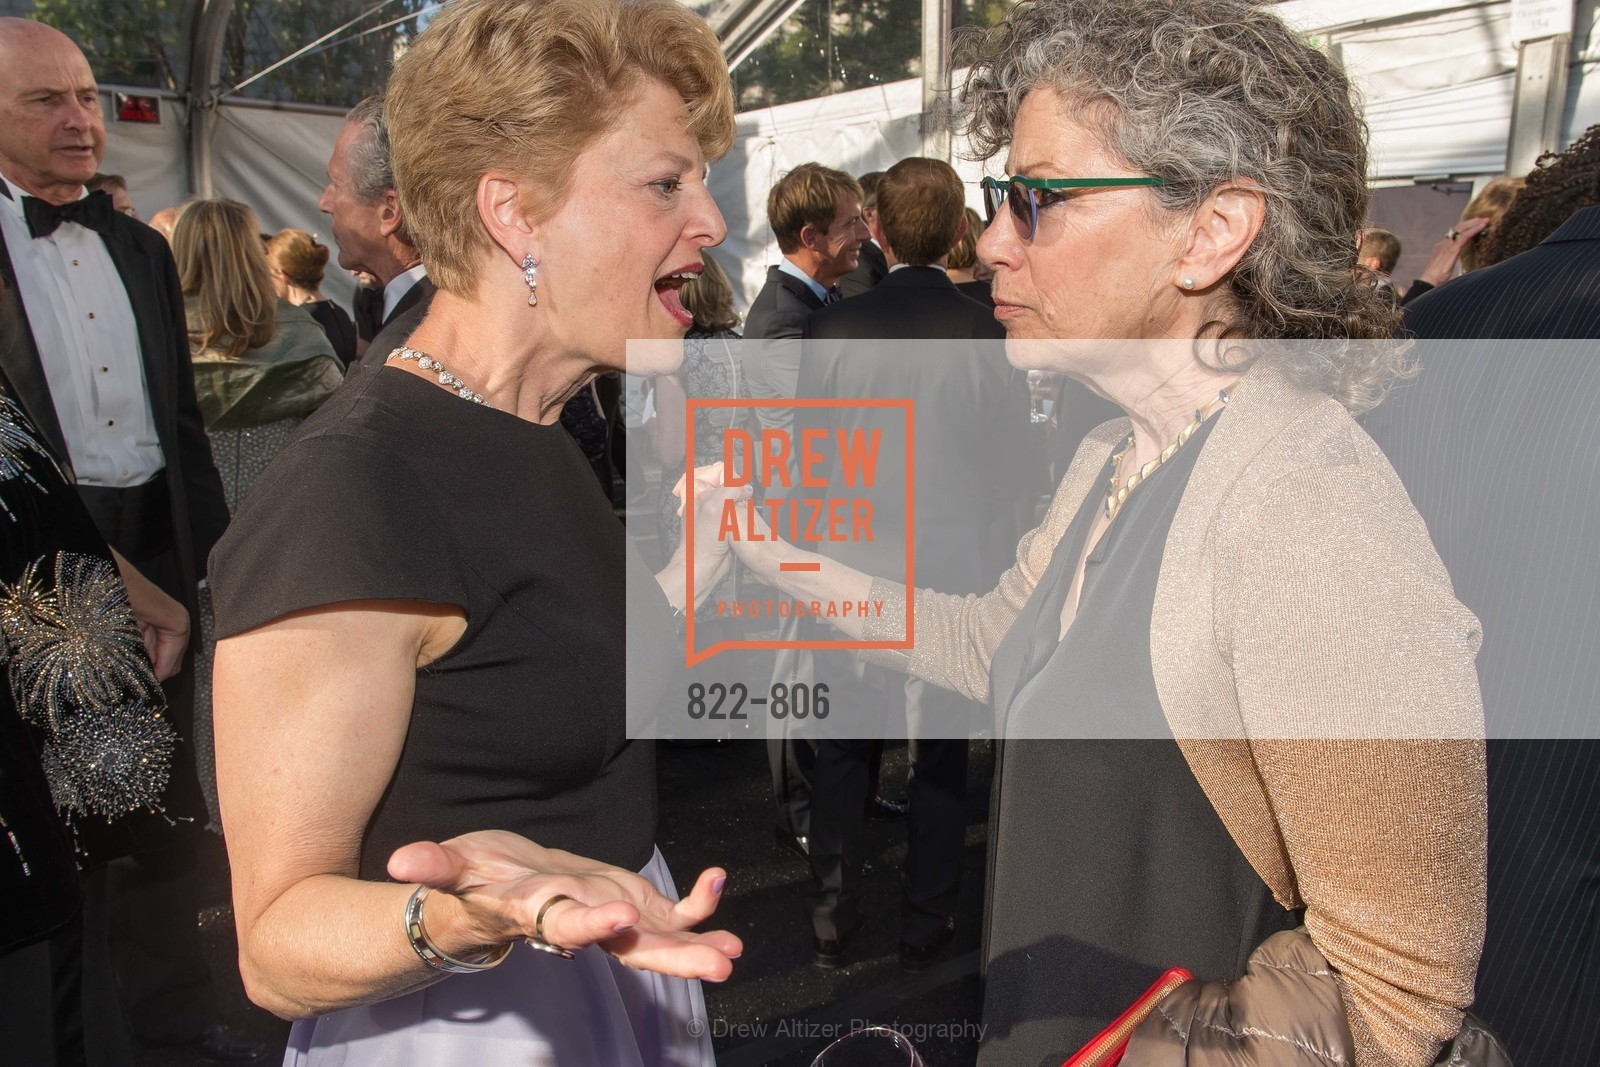 Carey Perloff, A.C.T. Gala Come Get Stranded, US, April 26th, 2015,Drew Altizer, Drew Altizer Photography, full-service event agency, private events, San Francisco photographer, photographer California